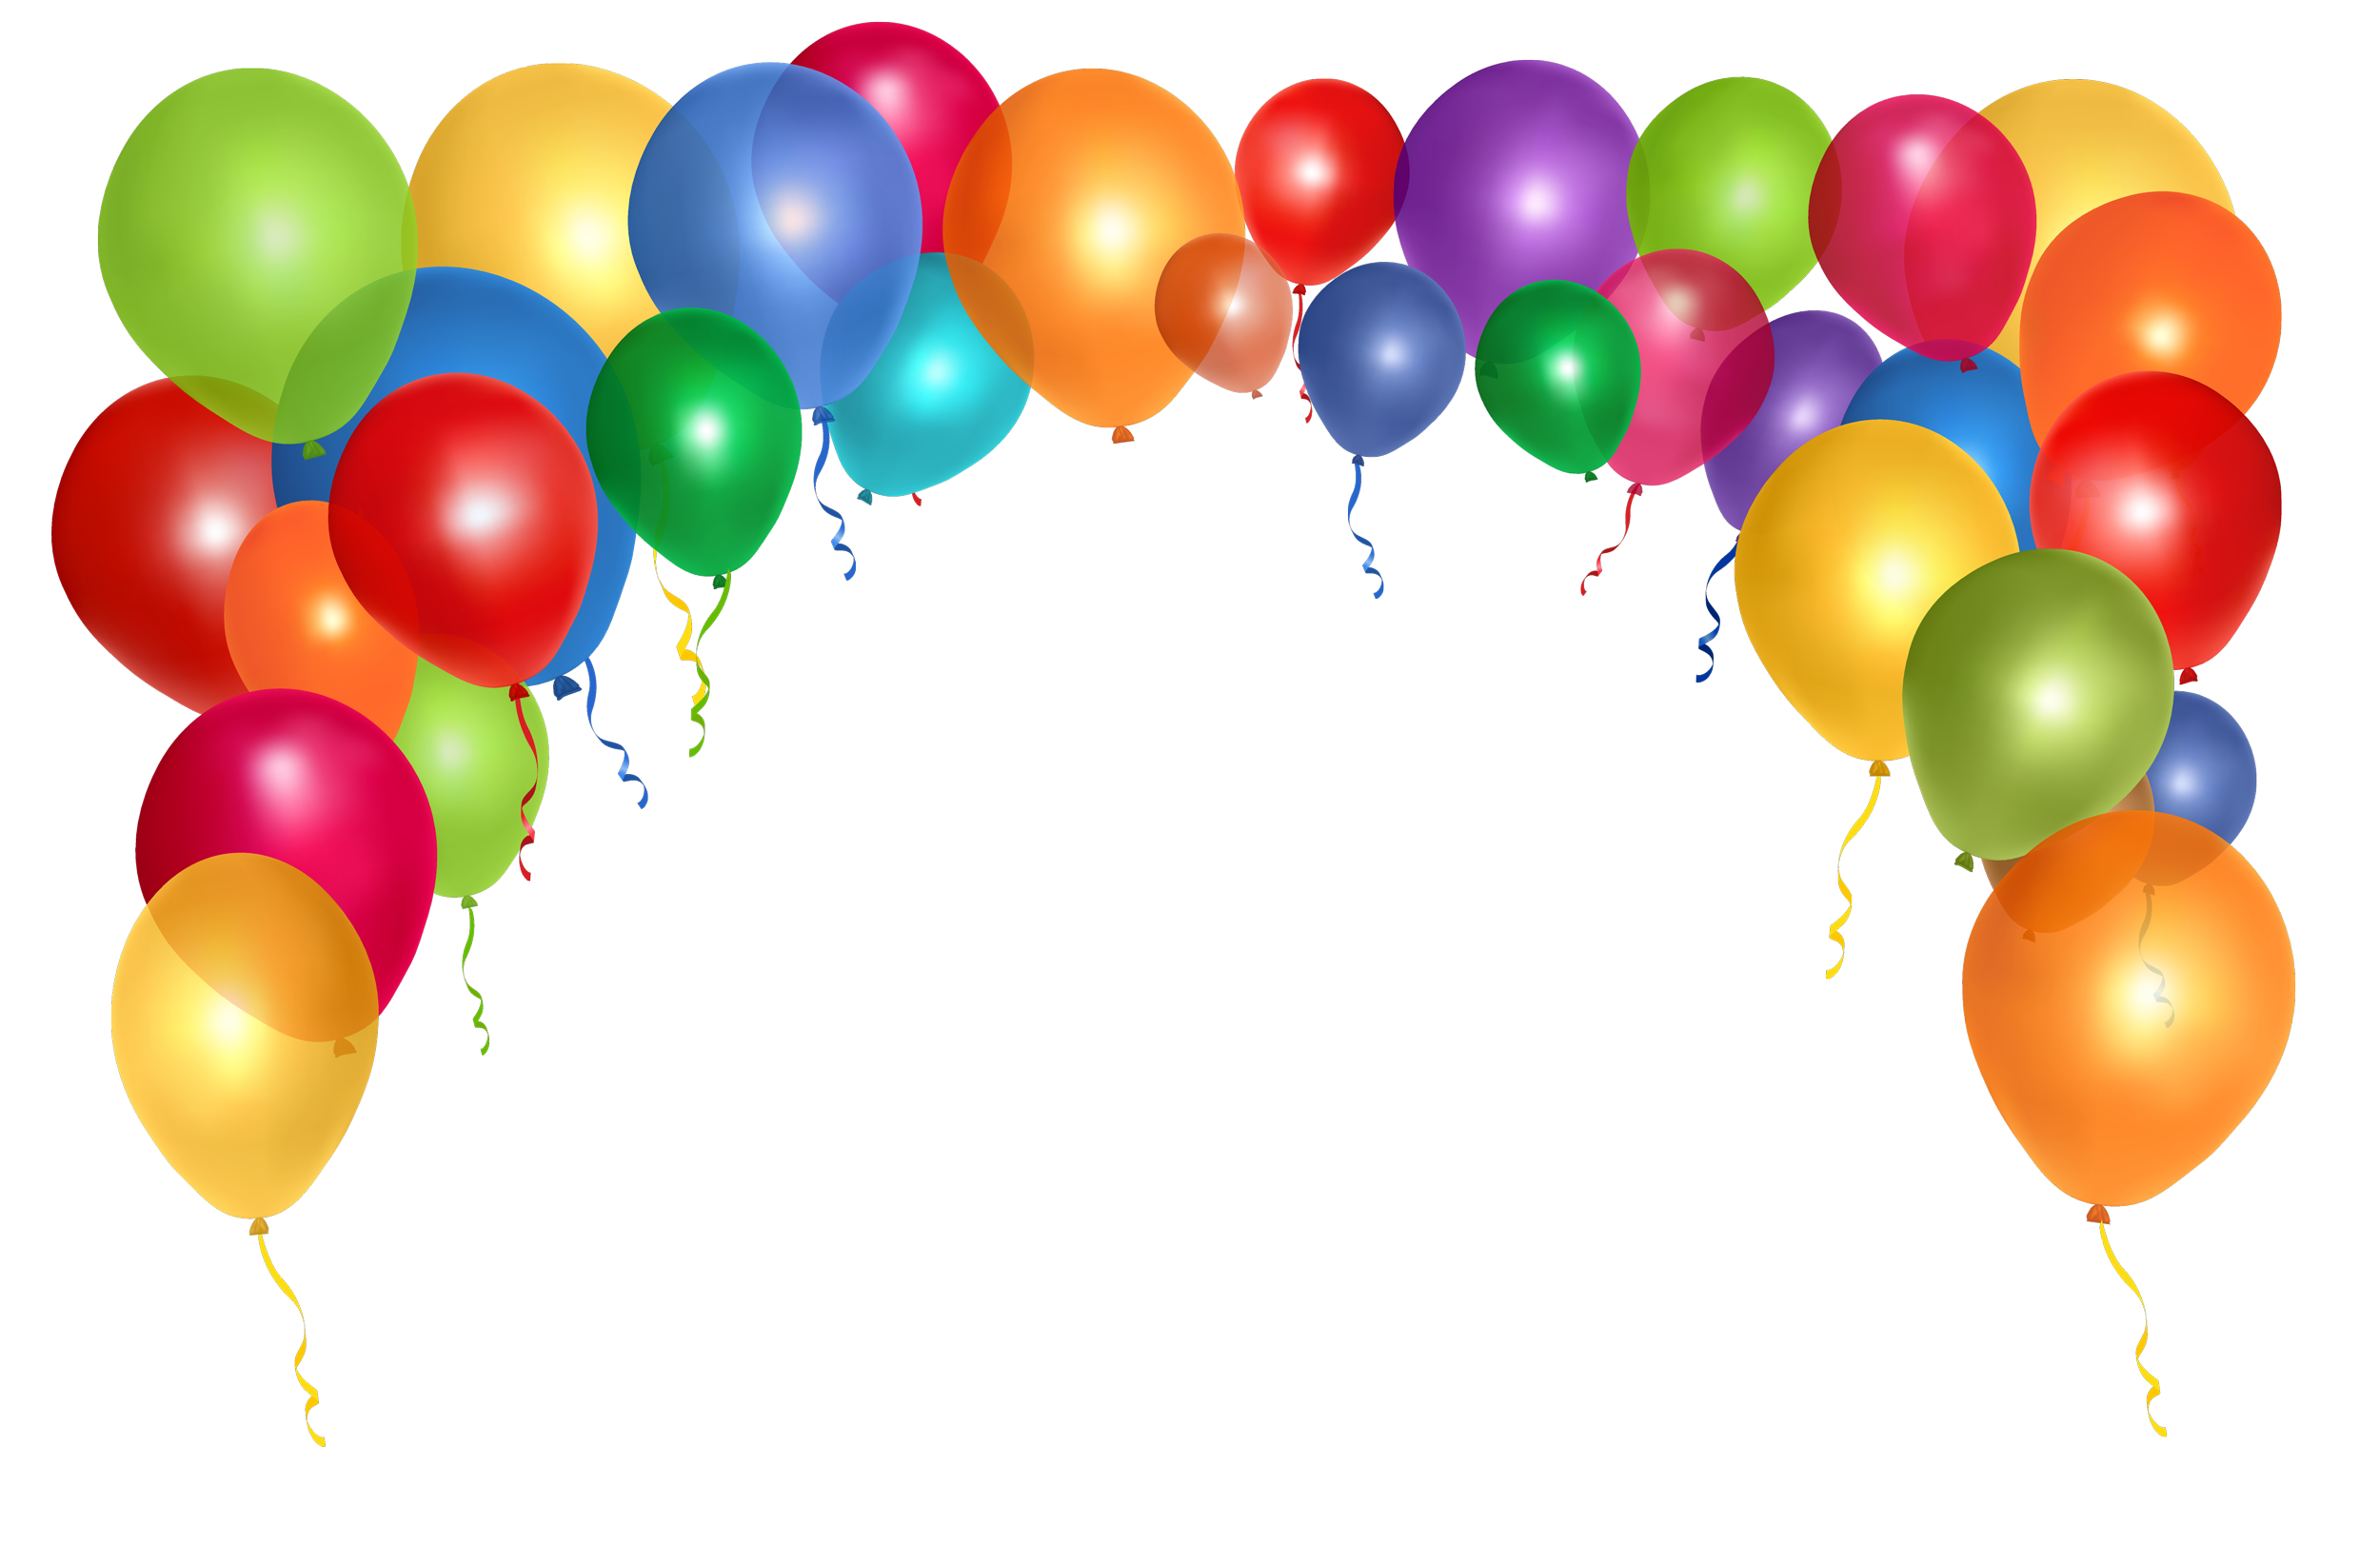 2500x1644 Balloons Png Images Transparent Free Download